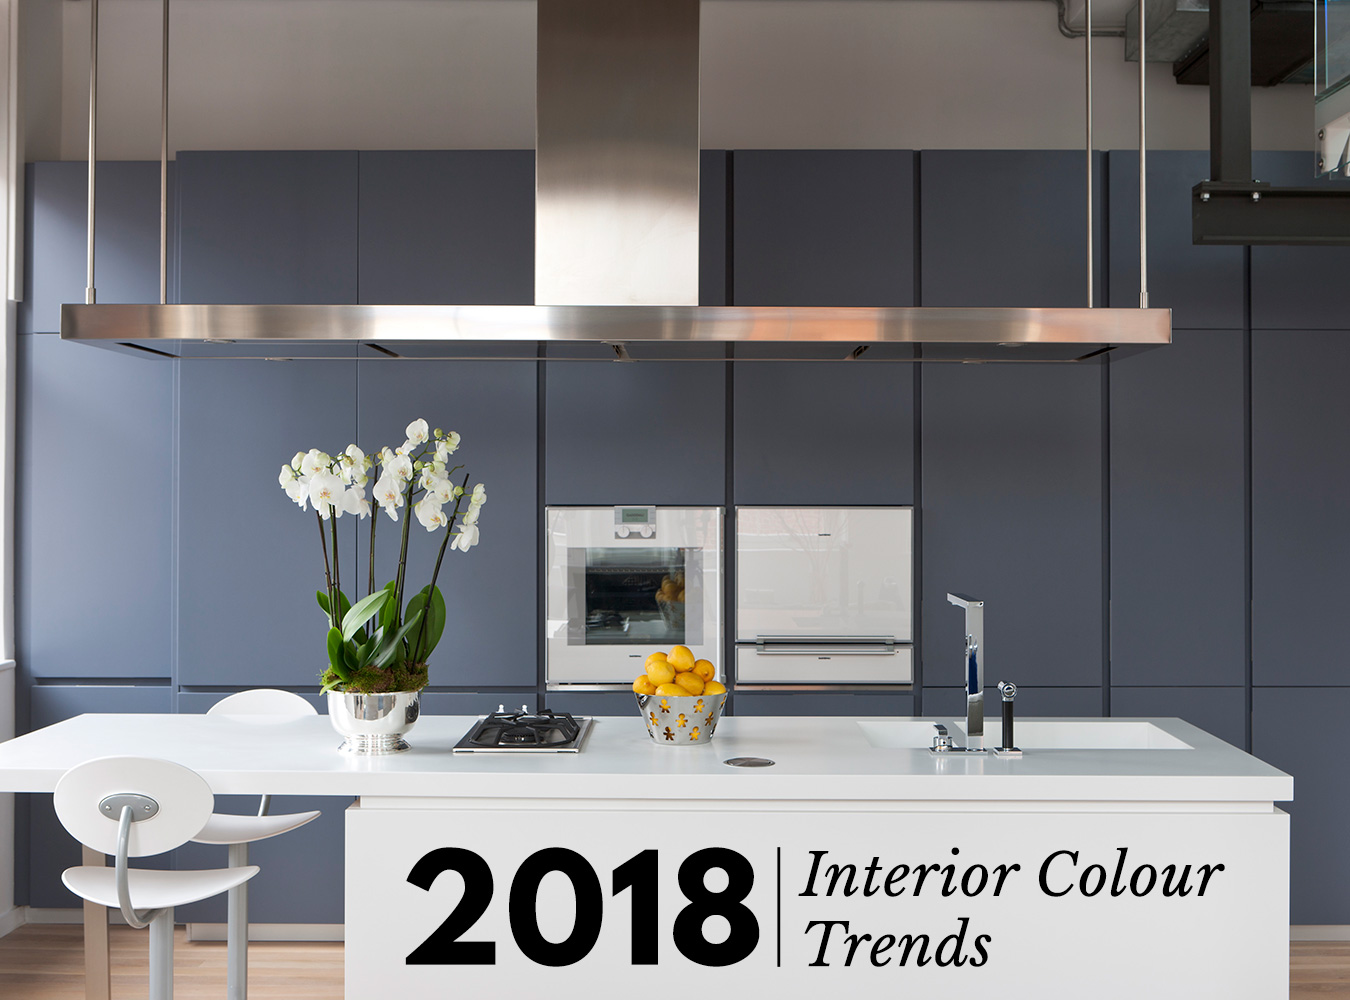 2018 Home Decor Color Trends 2018 Colour Trends For Every Room In The Home The Luxpad